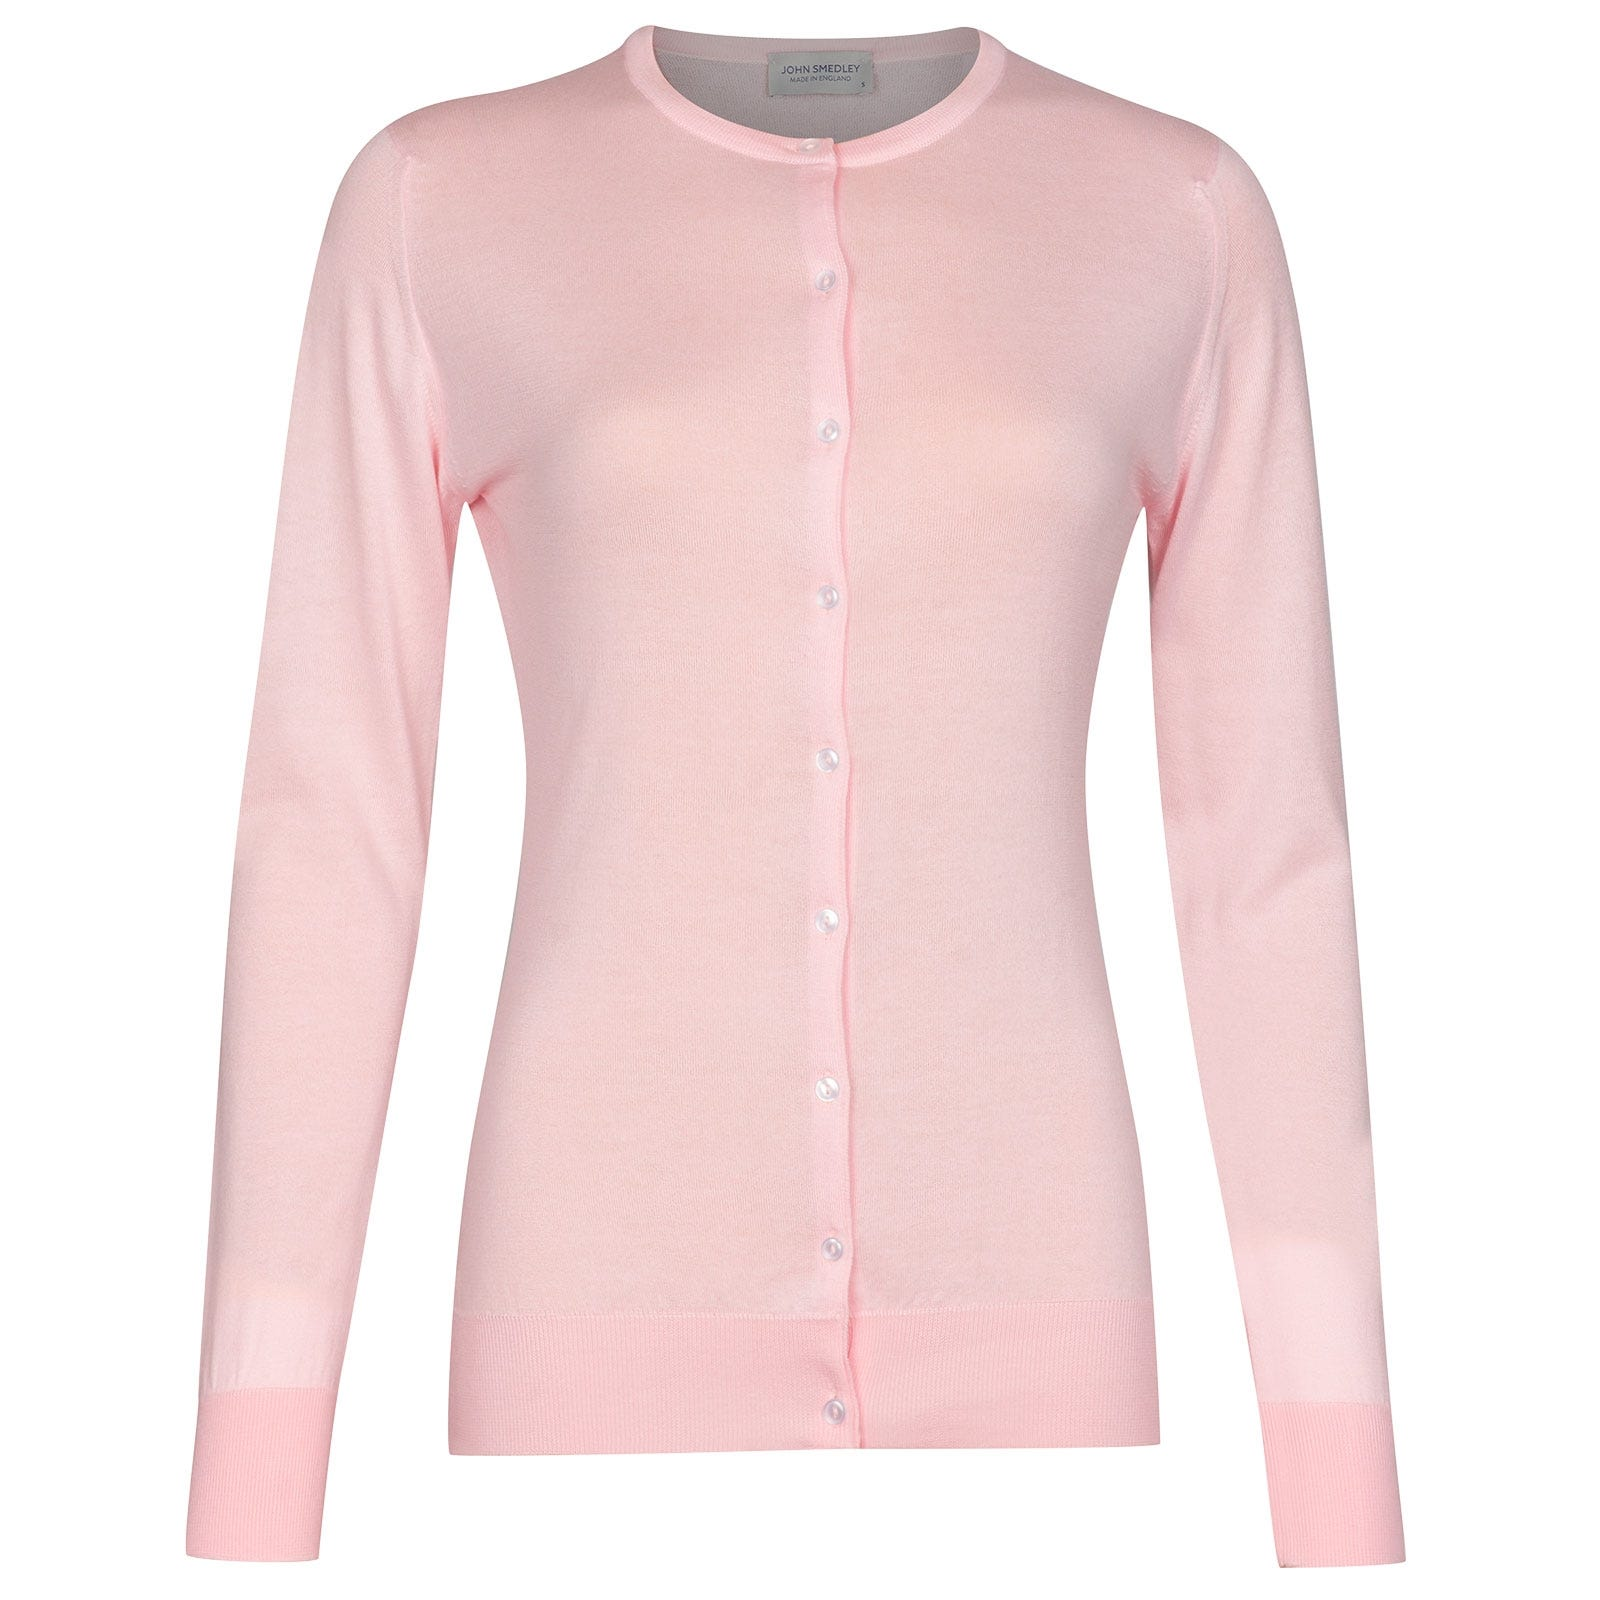 Islington-Dress-Shirt-pink-L